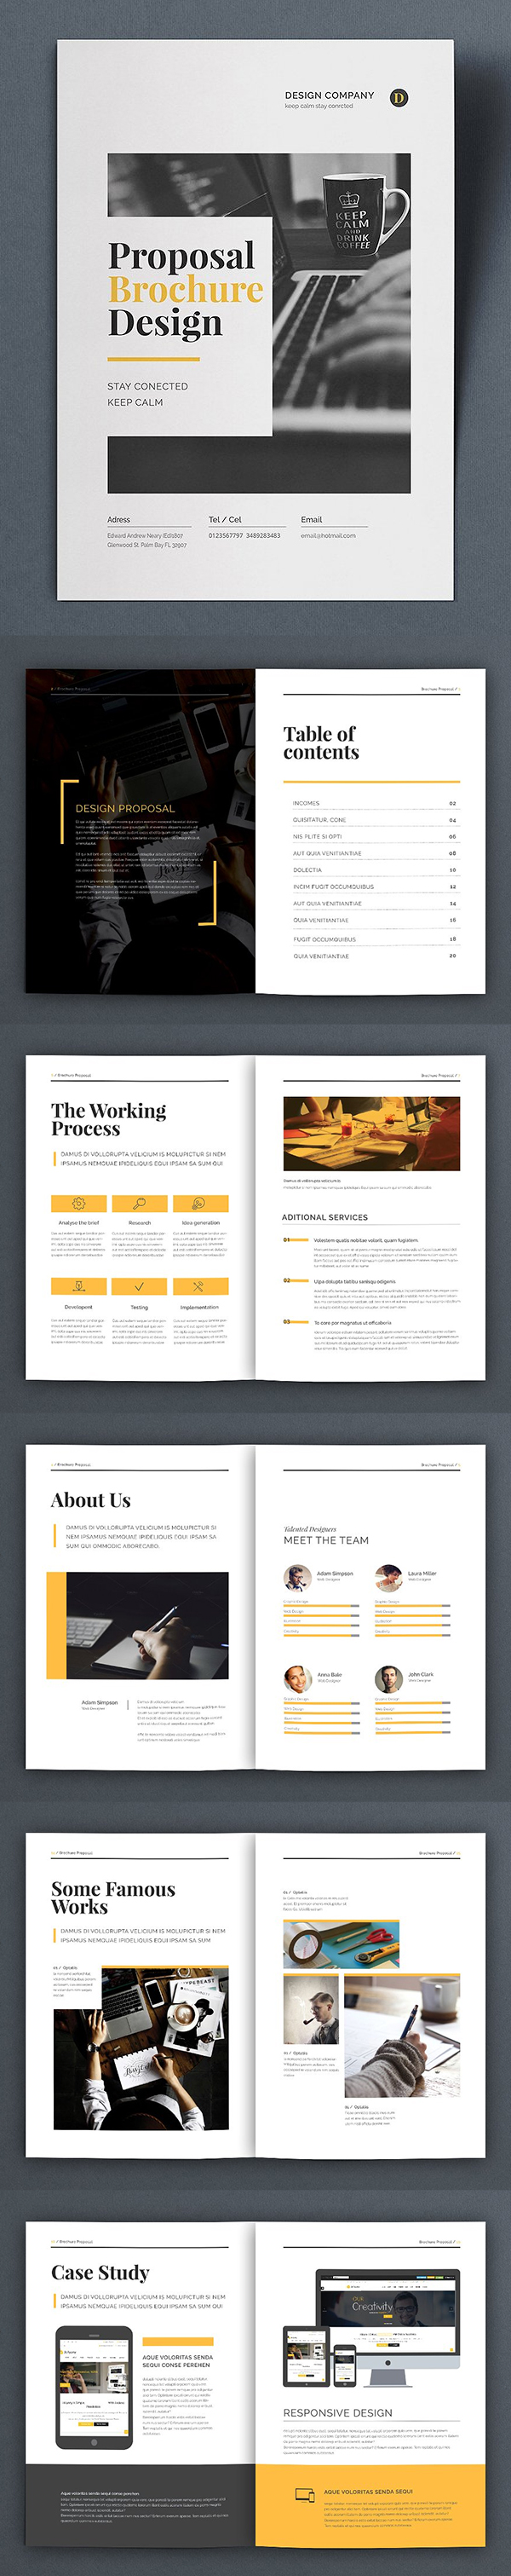 100 Professional Corporate Brochure Templates - 86